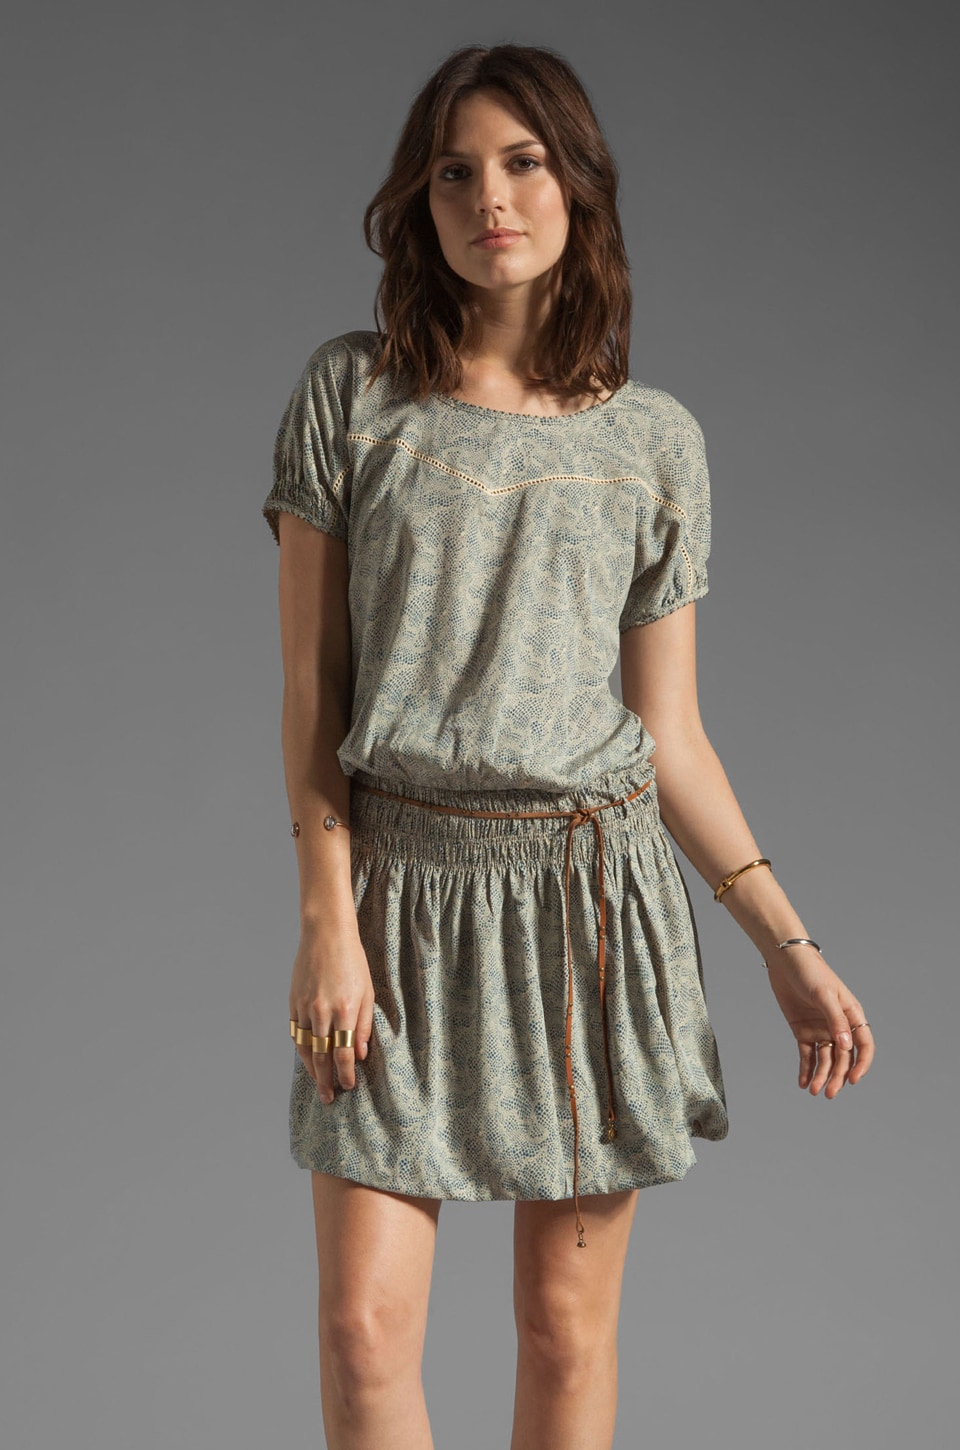 Maison Scotch Sweetheart Dress in Blue Print